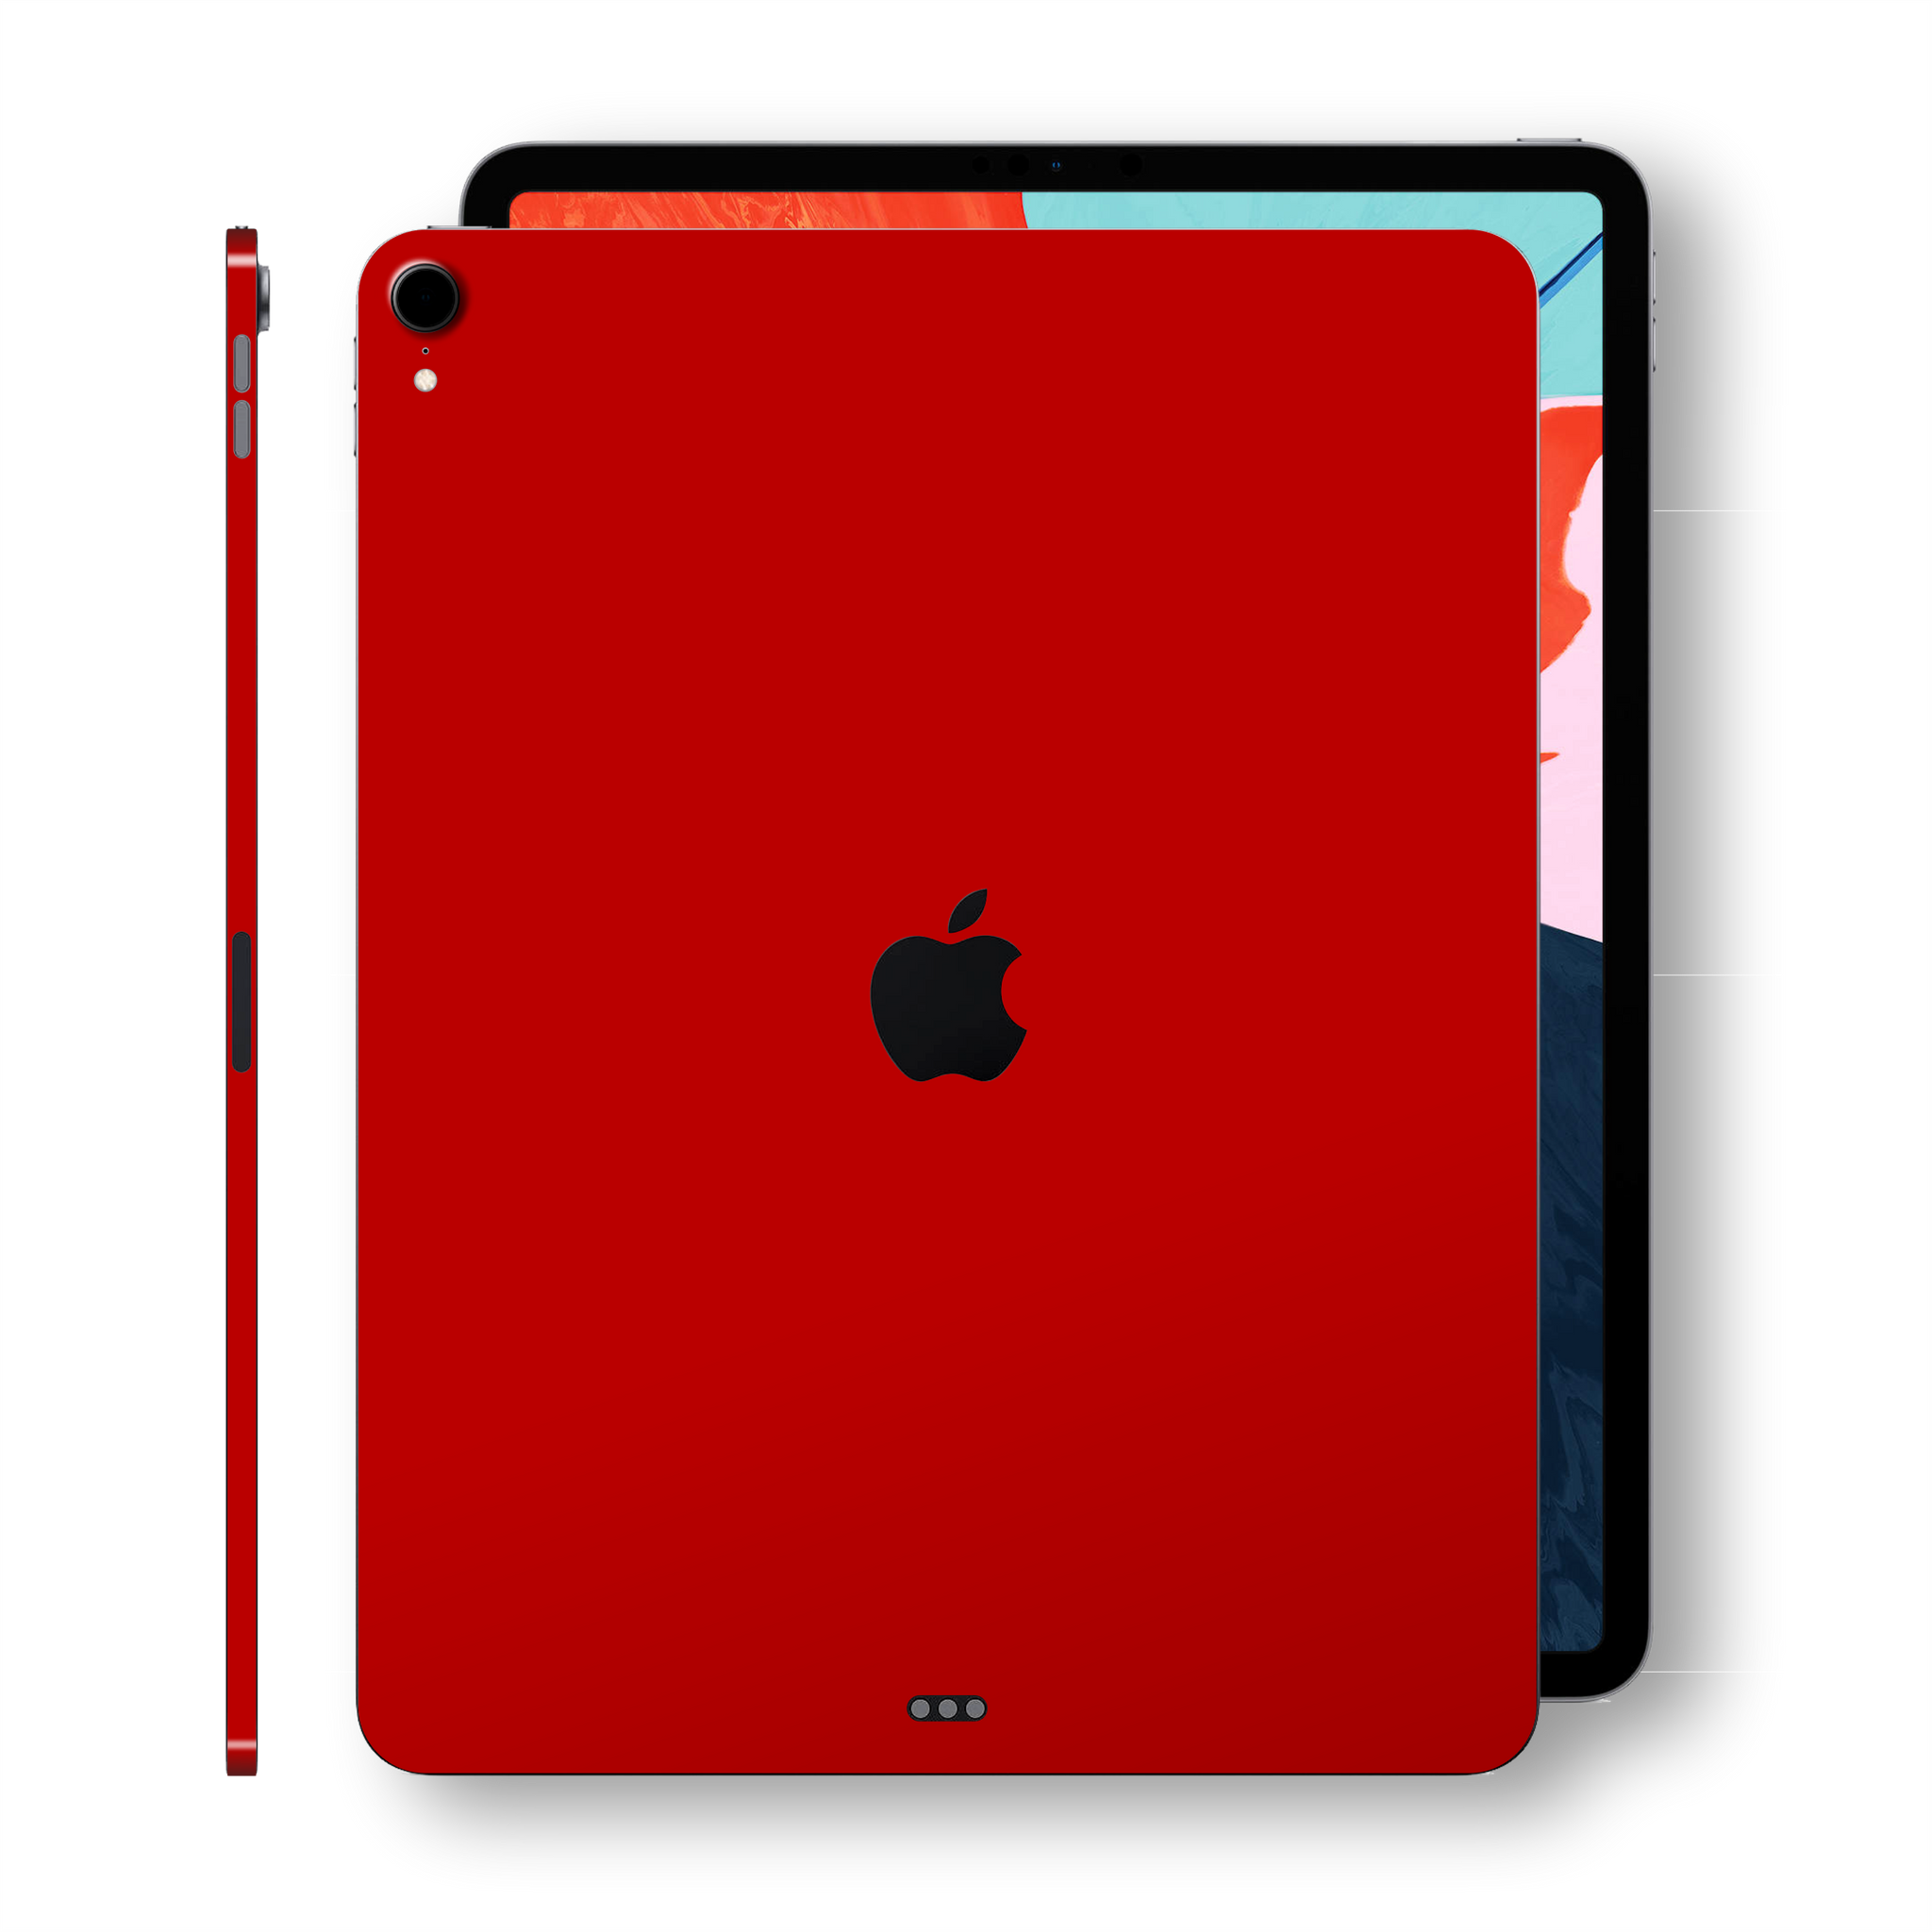 iPad PRO 12.9 inch 3rd Generation 2018 Glossy Deep Red Skin Wrap Sticker Decal Cover Protector by EasySkinz